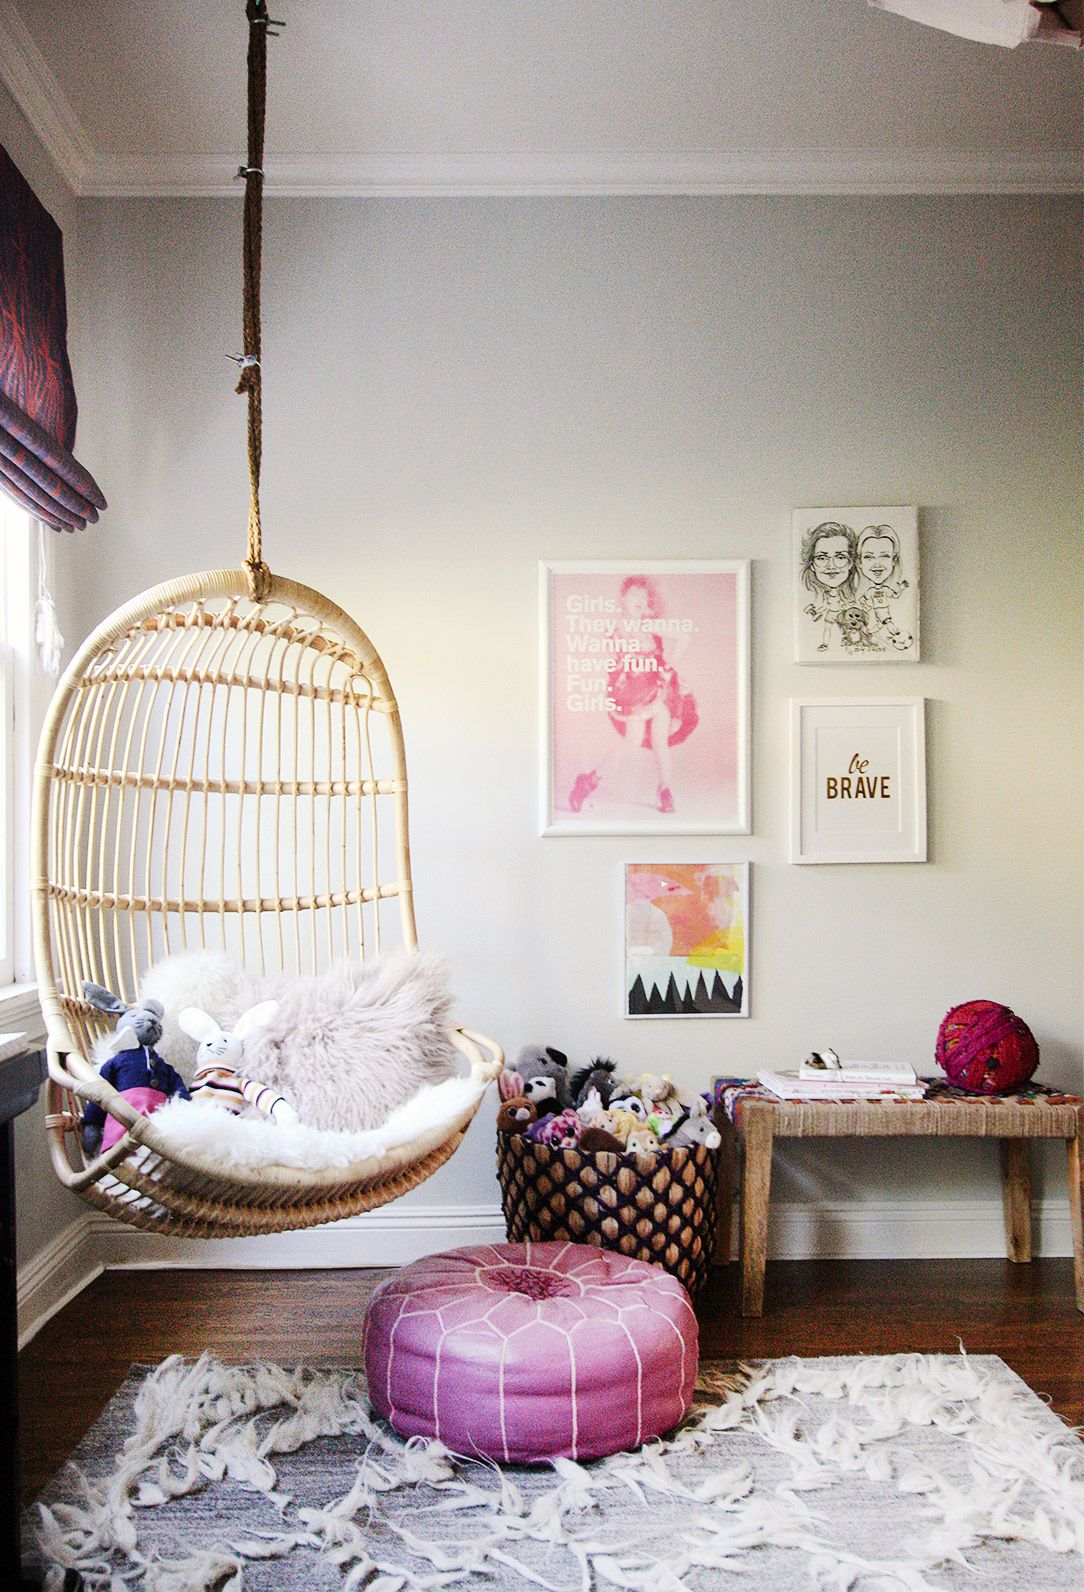 12 Design Commandments We Learned From Cool Scandinavian